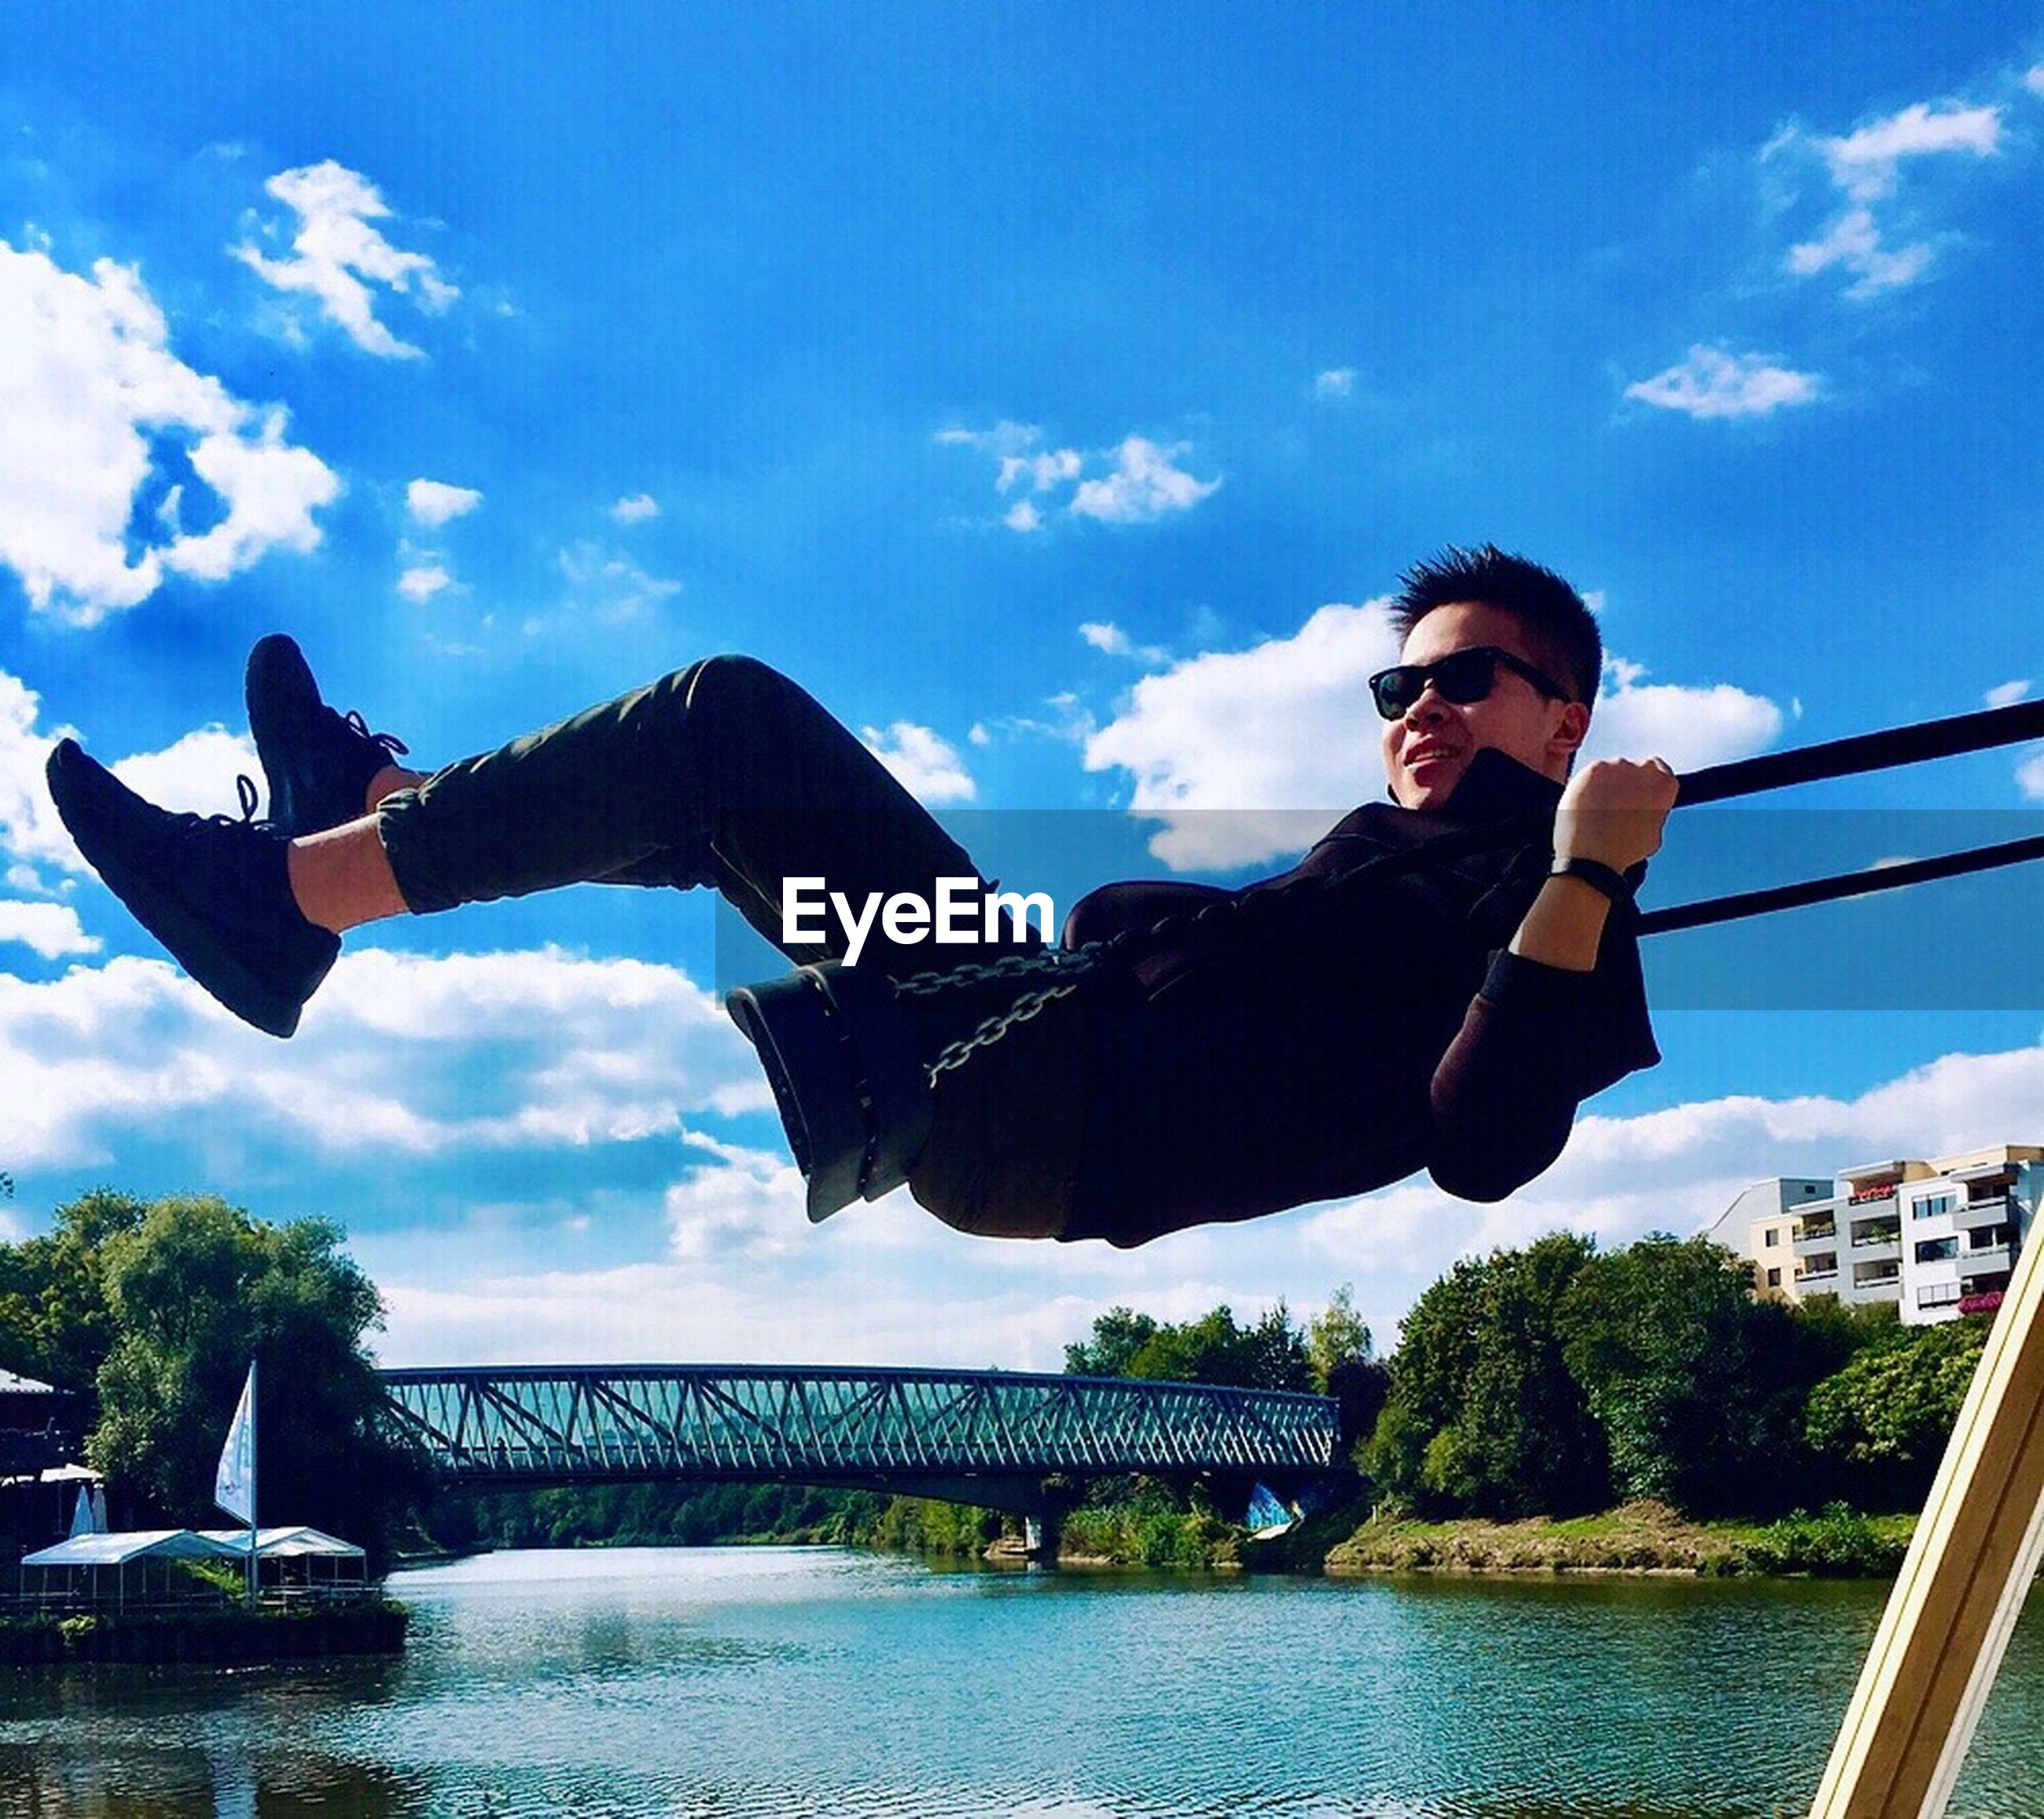 full length, leisure activity, lifestyles, casual clothing, sky, water, enjoyment, person, young adult, motion, fun, bridge - man made structure, river, cloud - sky, vitality, waterfront, mid-air, day, joy, outdoors